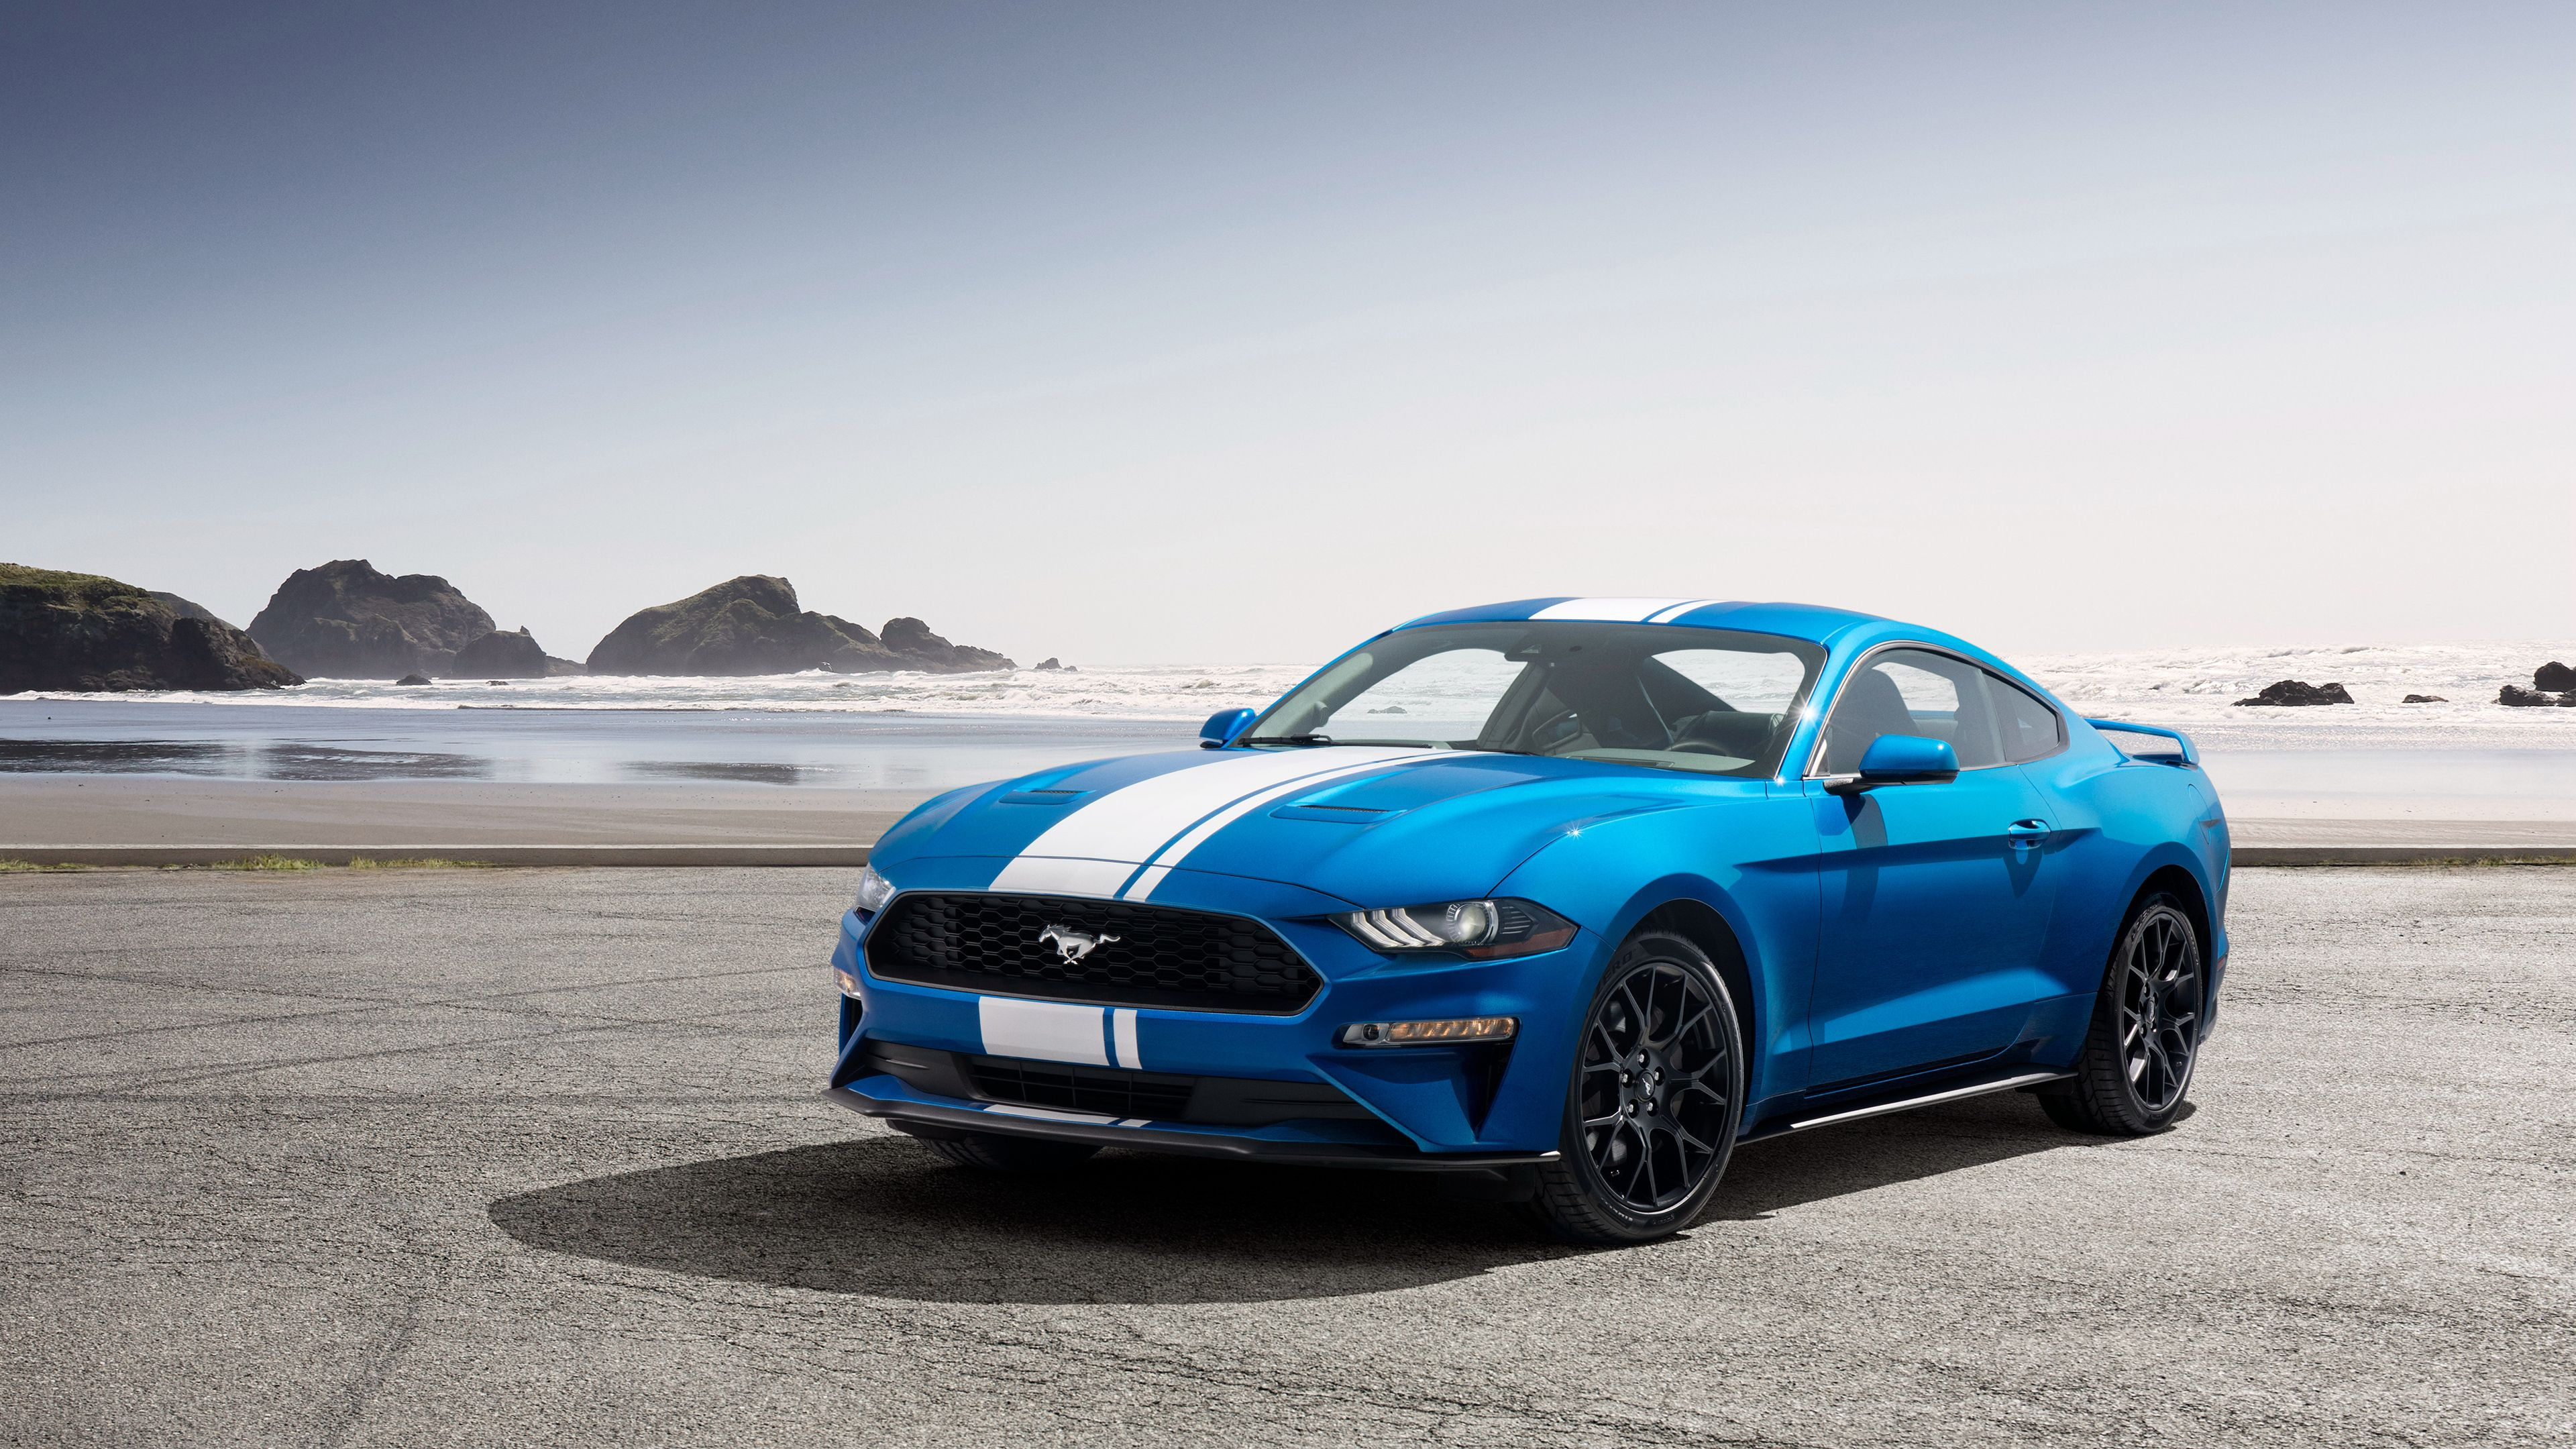 2019 Mustang Wallpapers Top Free 2019 Mustang Backgrounds Wallpaperaccess